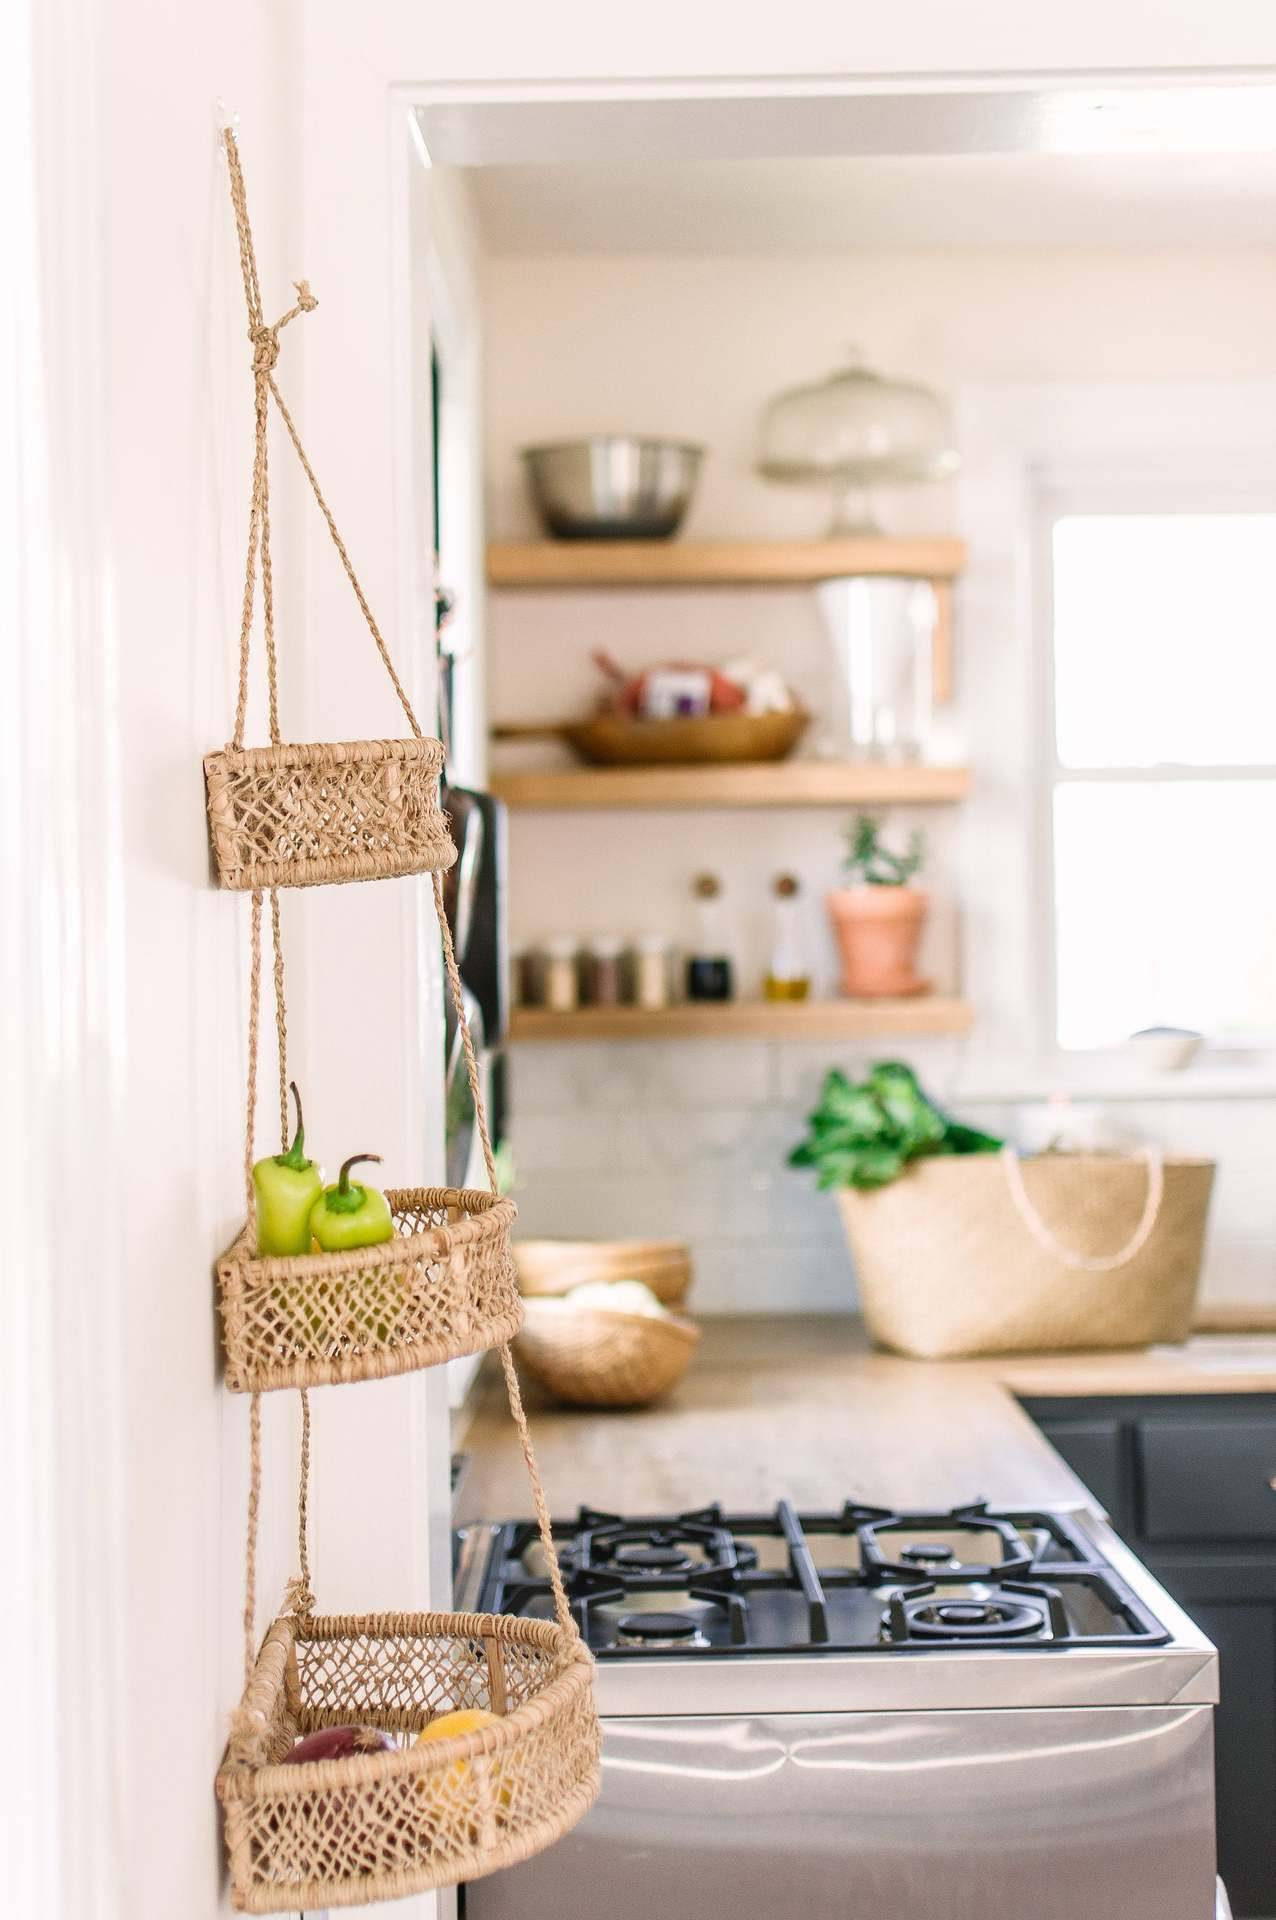 jcpenney kitchen wall decor